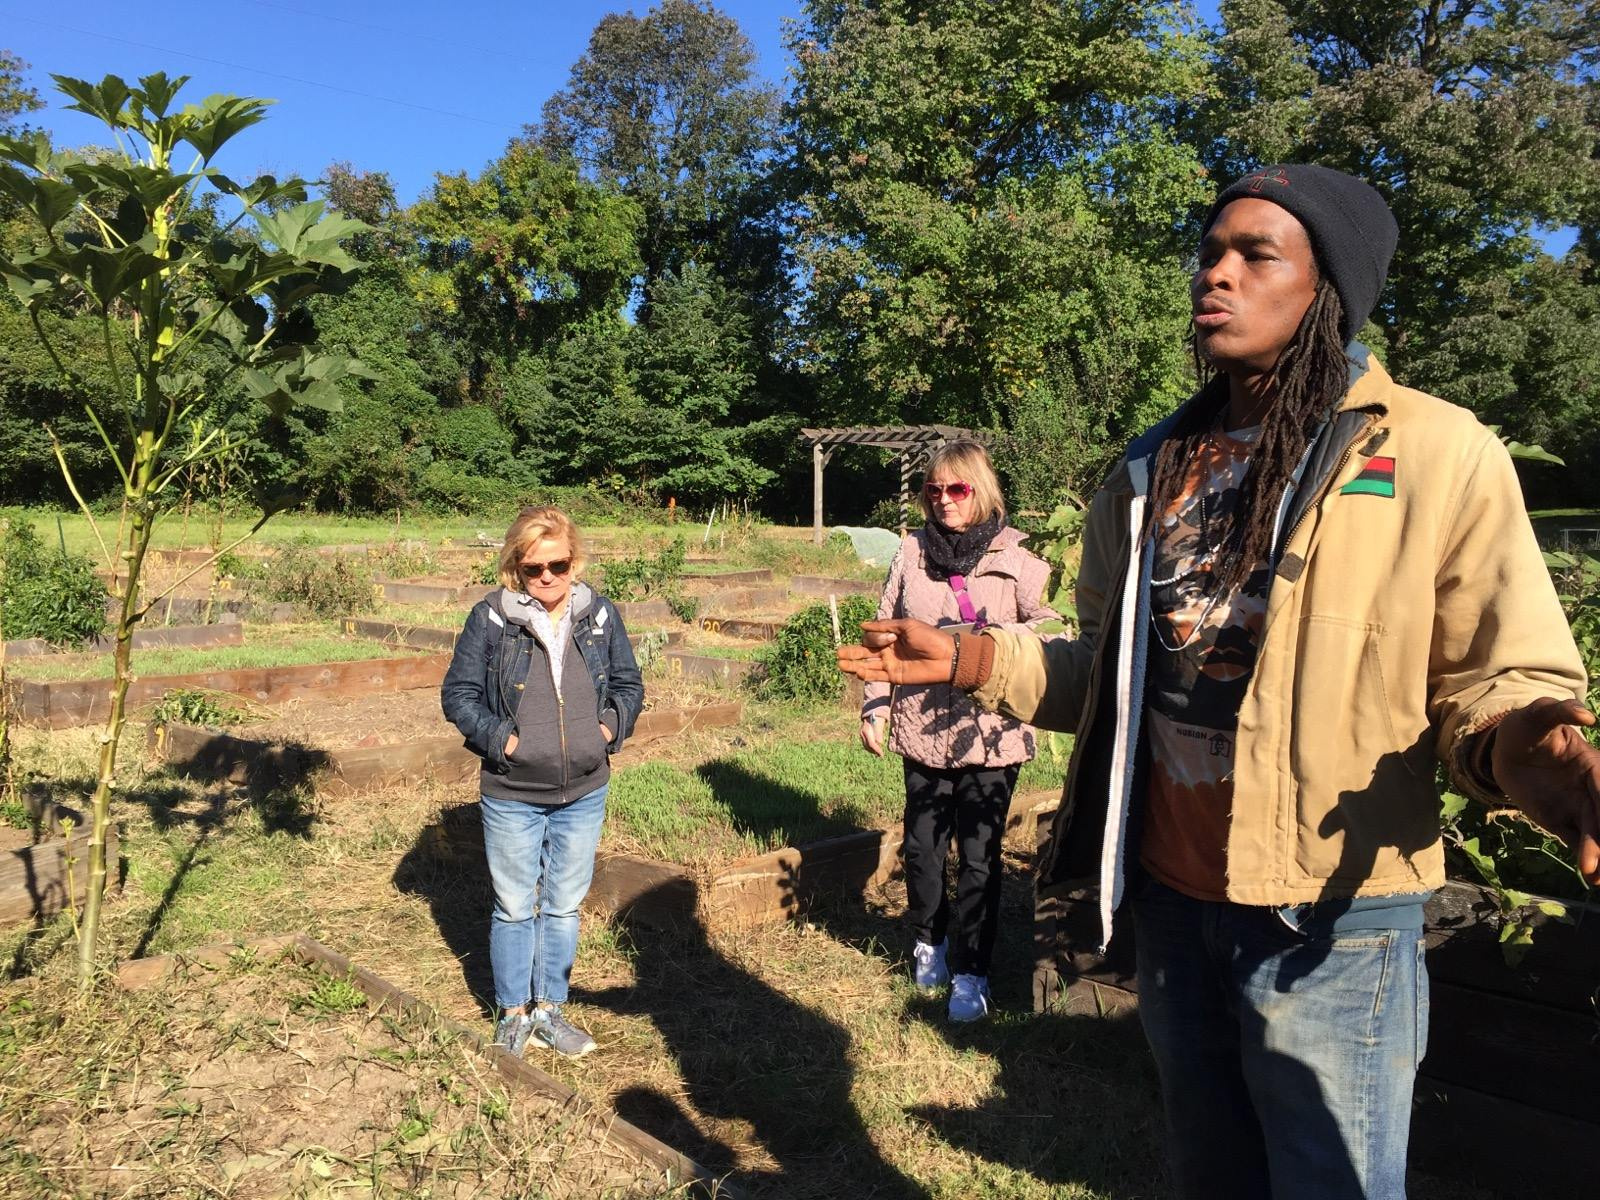 NESAWG 2017 Conference Attendees at Bartram's Garden, Philly's oldest urban garden, as part of an urban ag tour of West Philadelphia.